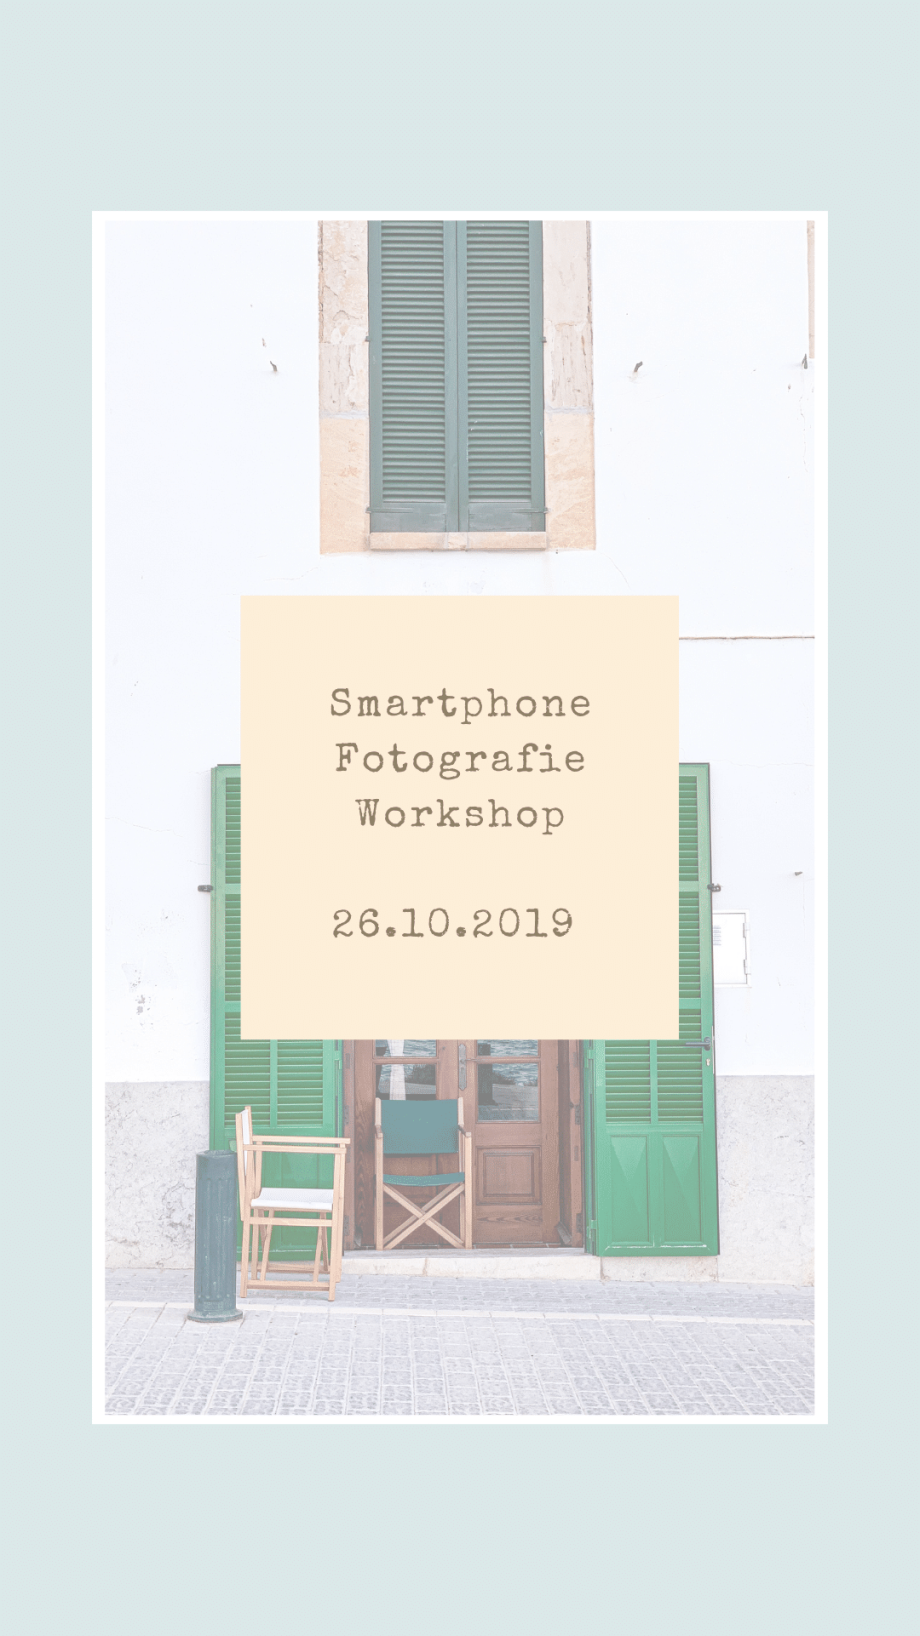 Smartphone Fotografie Workshop am 26.10.2019 in Leipzig!